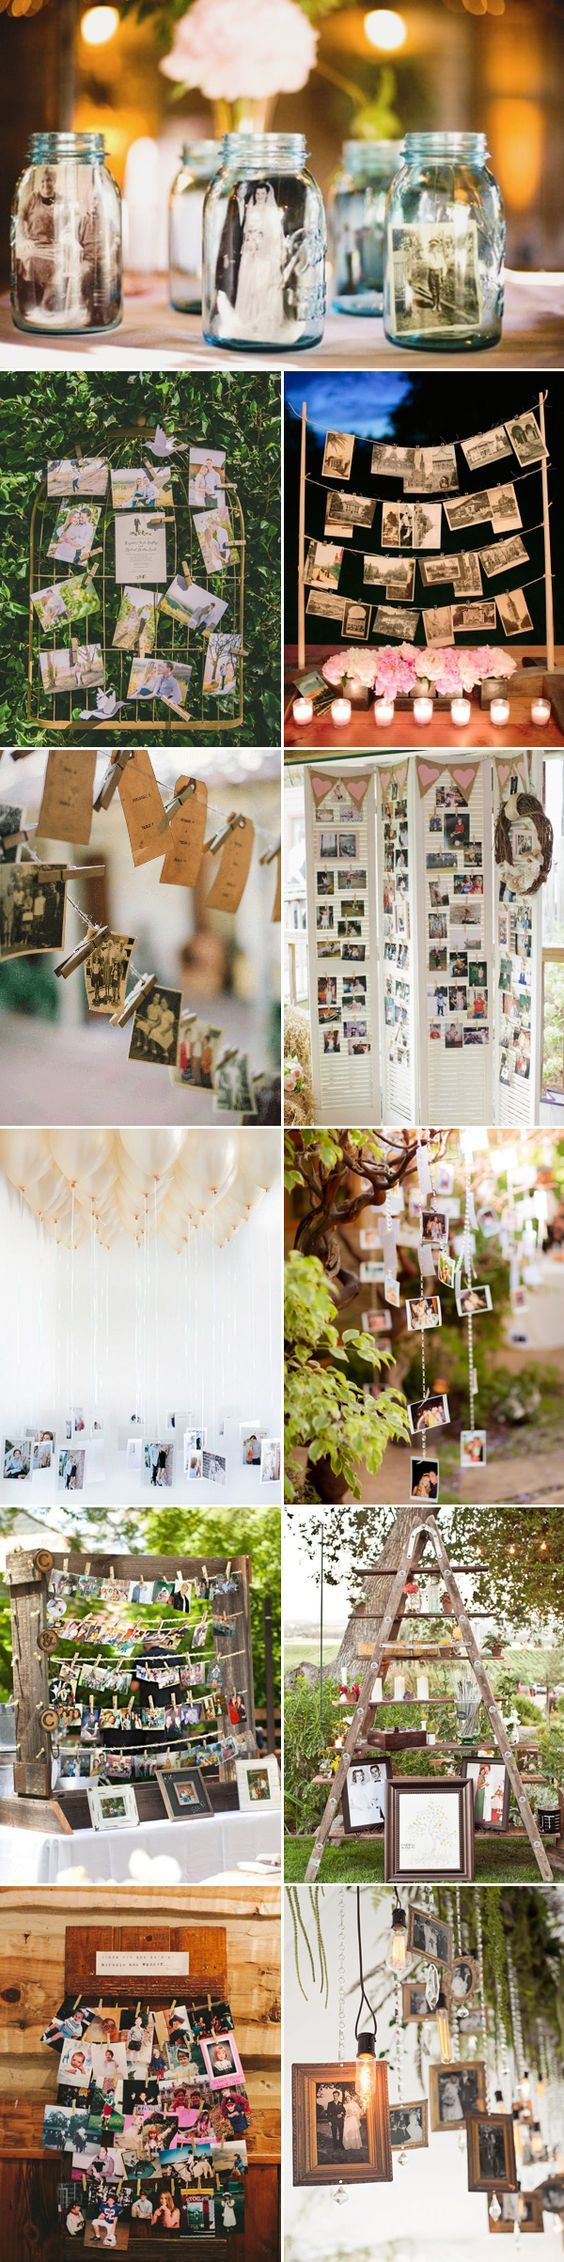 Inspiration for Displaying Photos at your Wedding / http://www.himisspuff.com/ideas-to-display-wedding-photos/